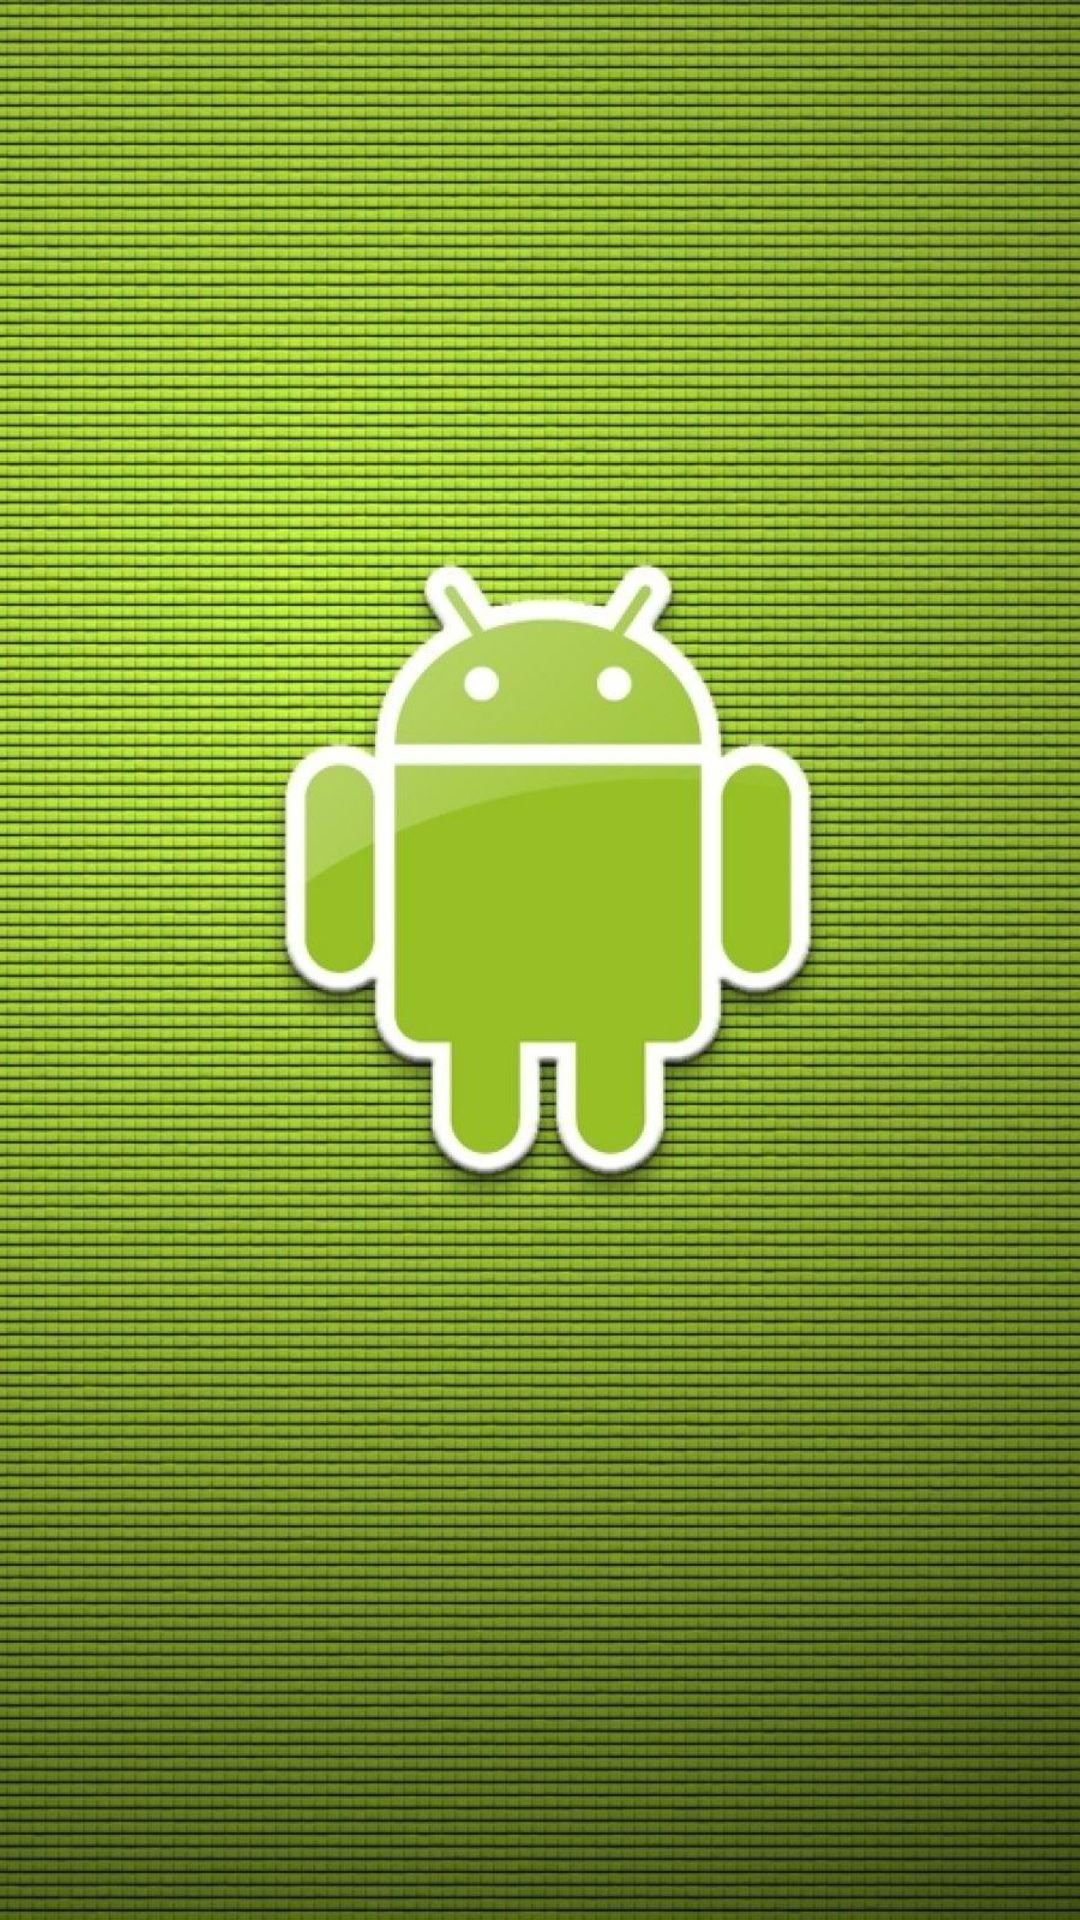 Green Android Galaxy S4 Wallpapers Smartphone wallpaper